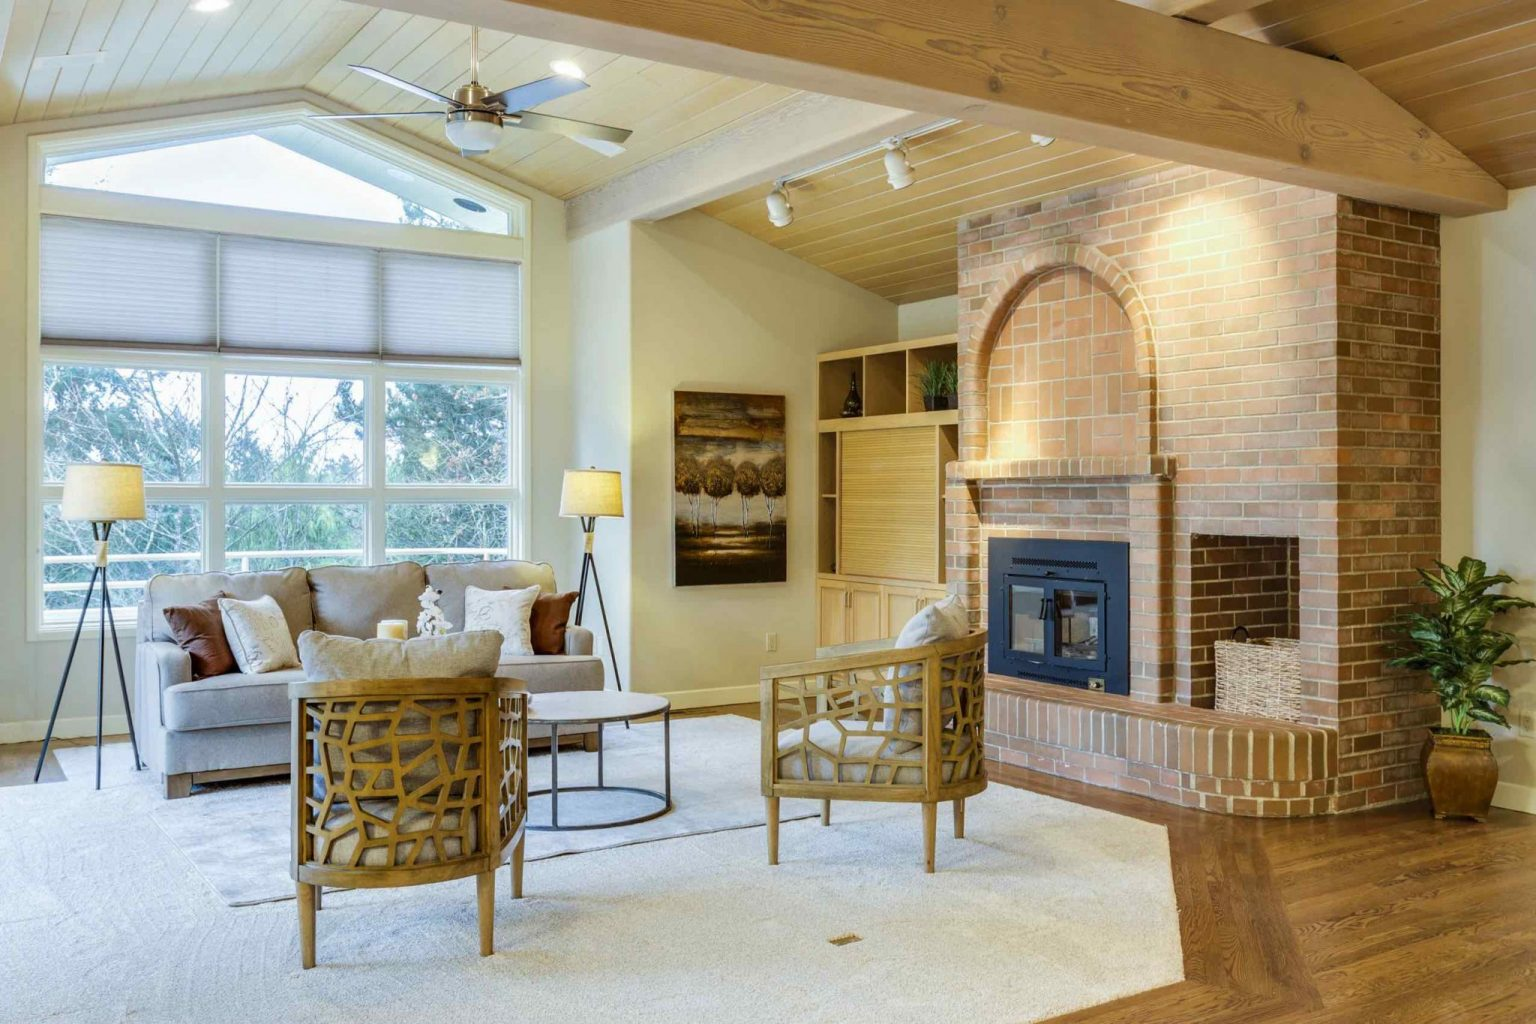 How Residential Window Film Upgrades Your Home's Windows - Home Window Tinting in the Iowa City or Cedar Rapids, Iowa Area